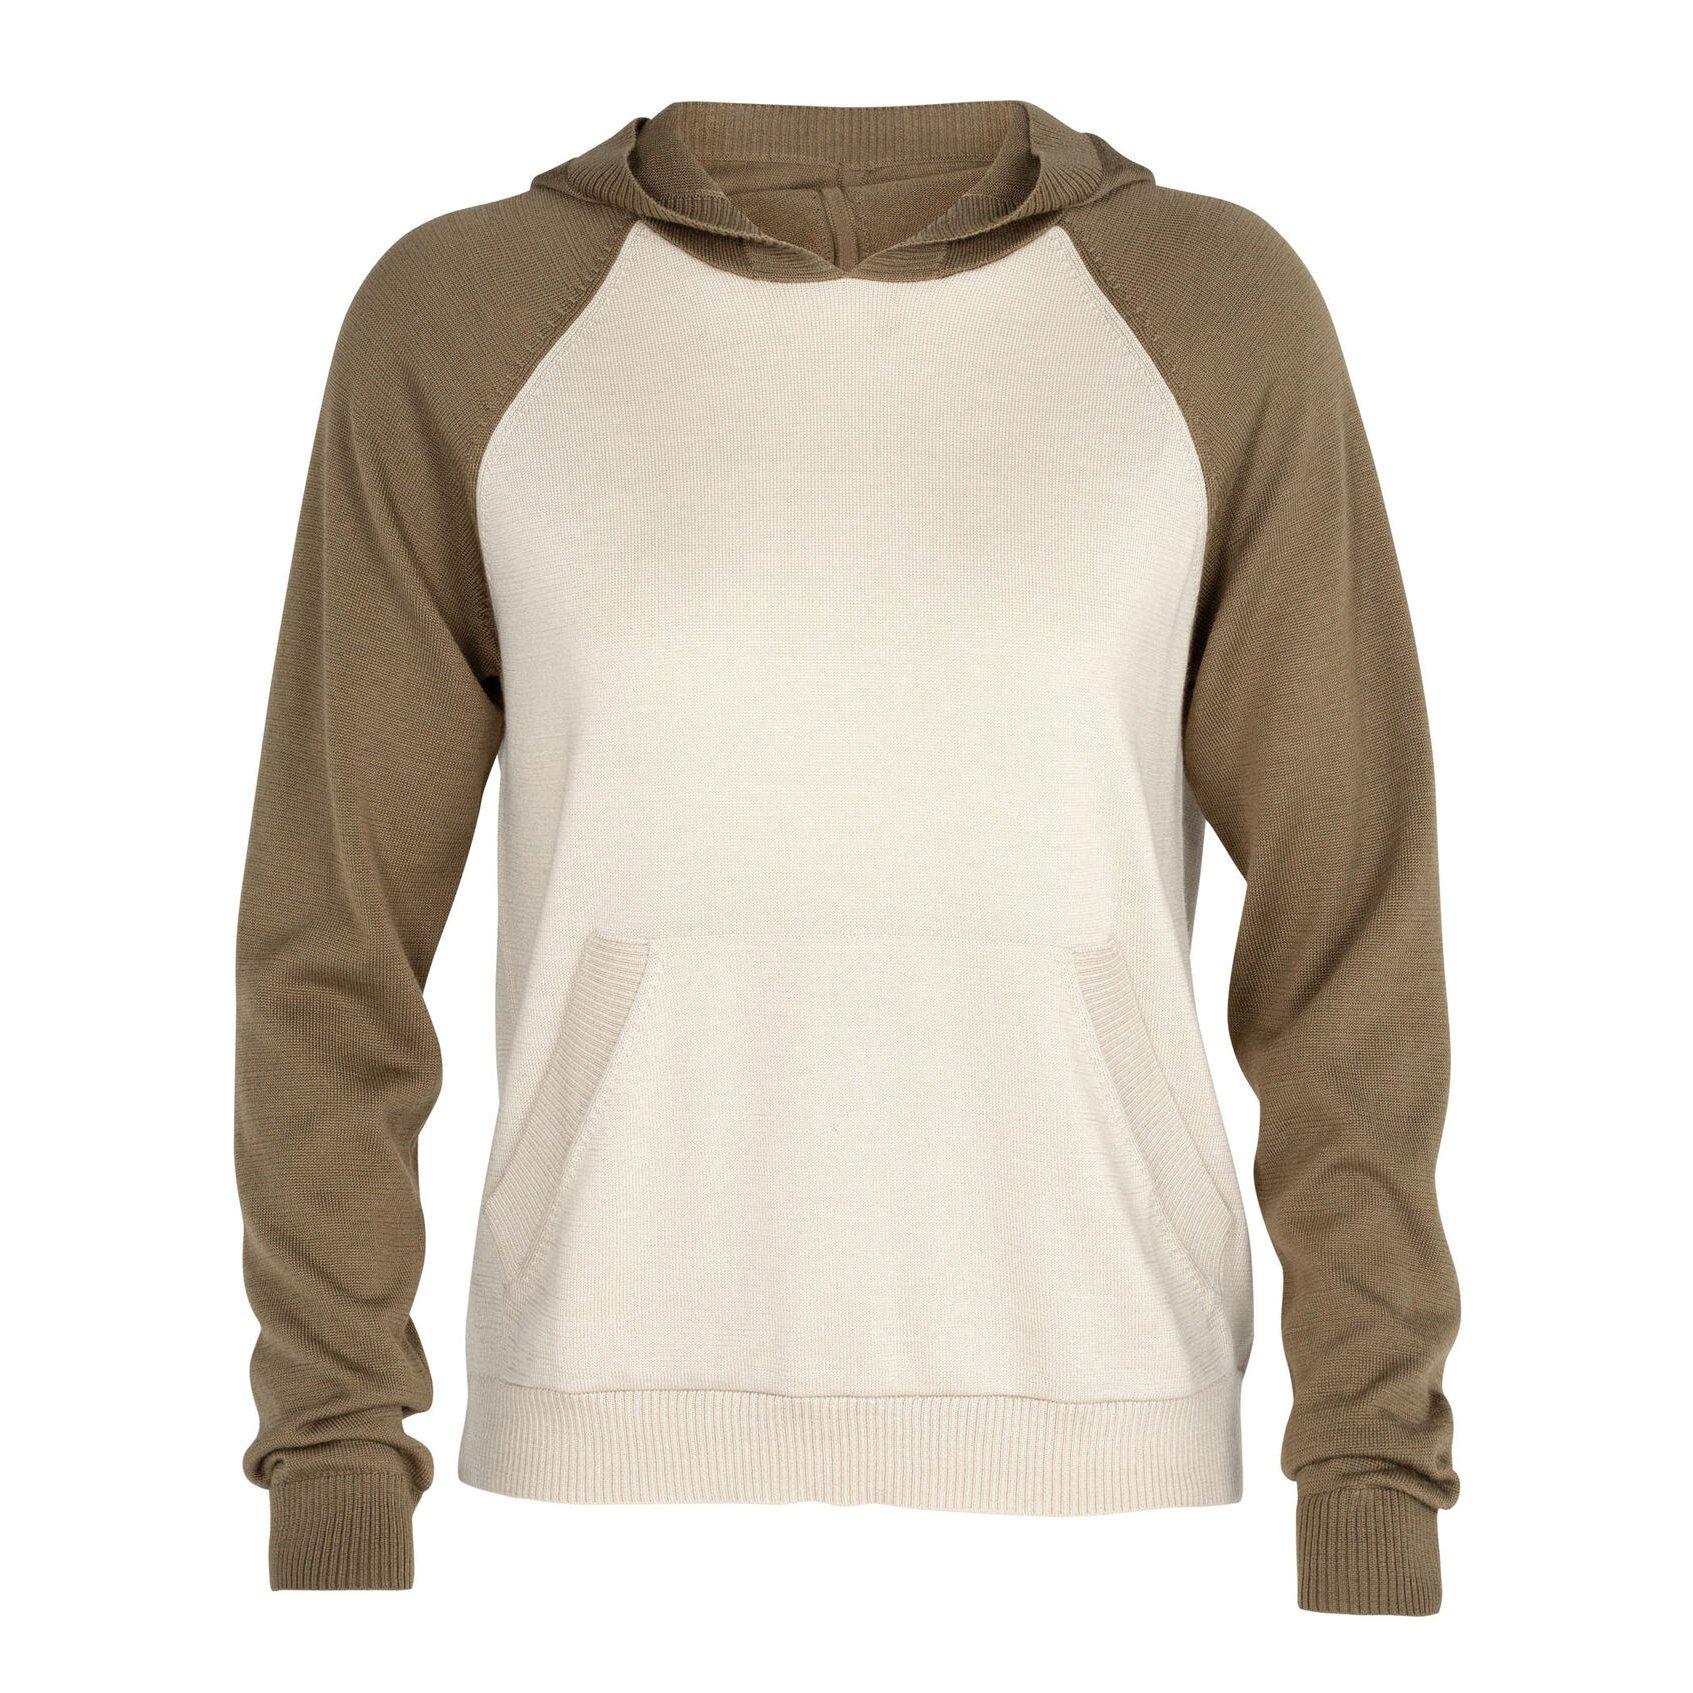 Utility Explore Hooded Pullover - Women's